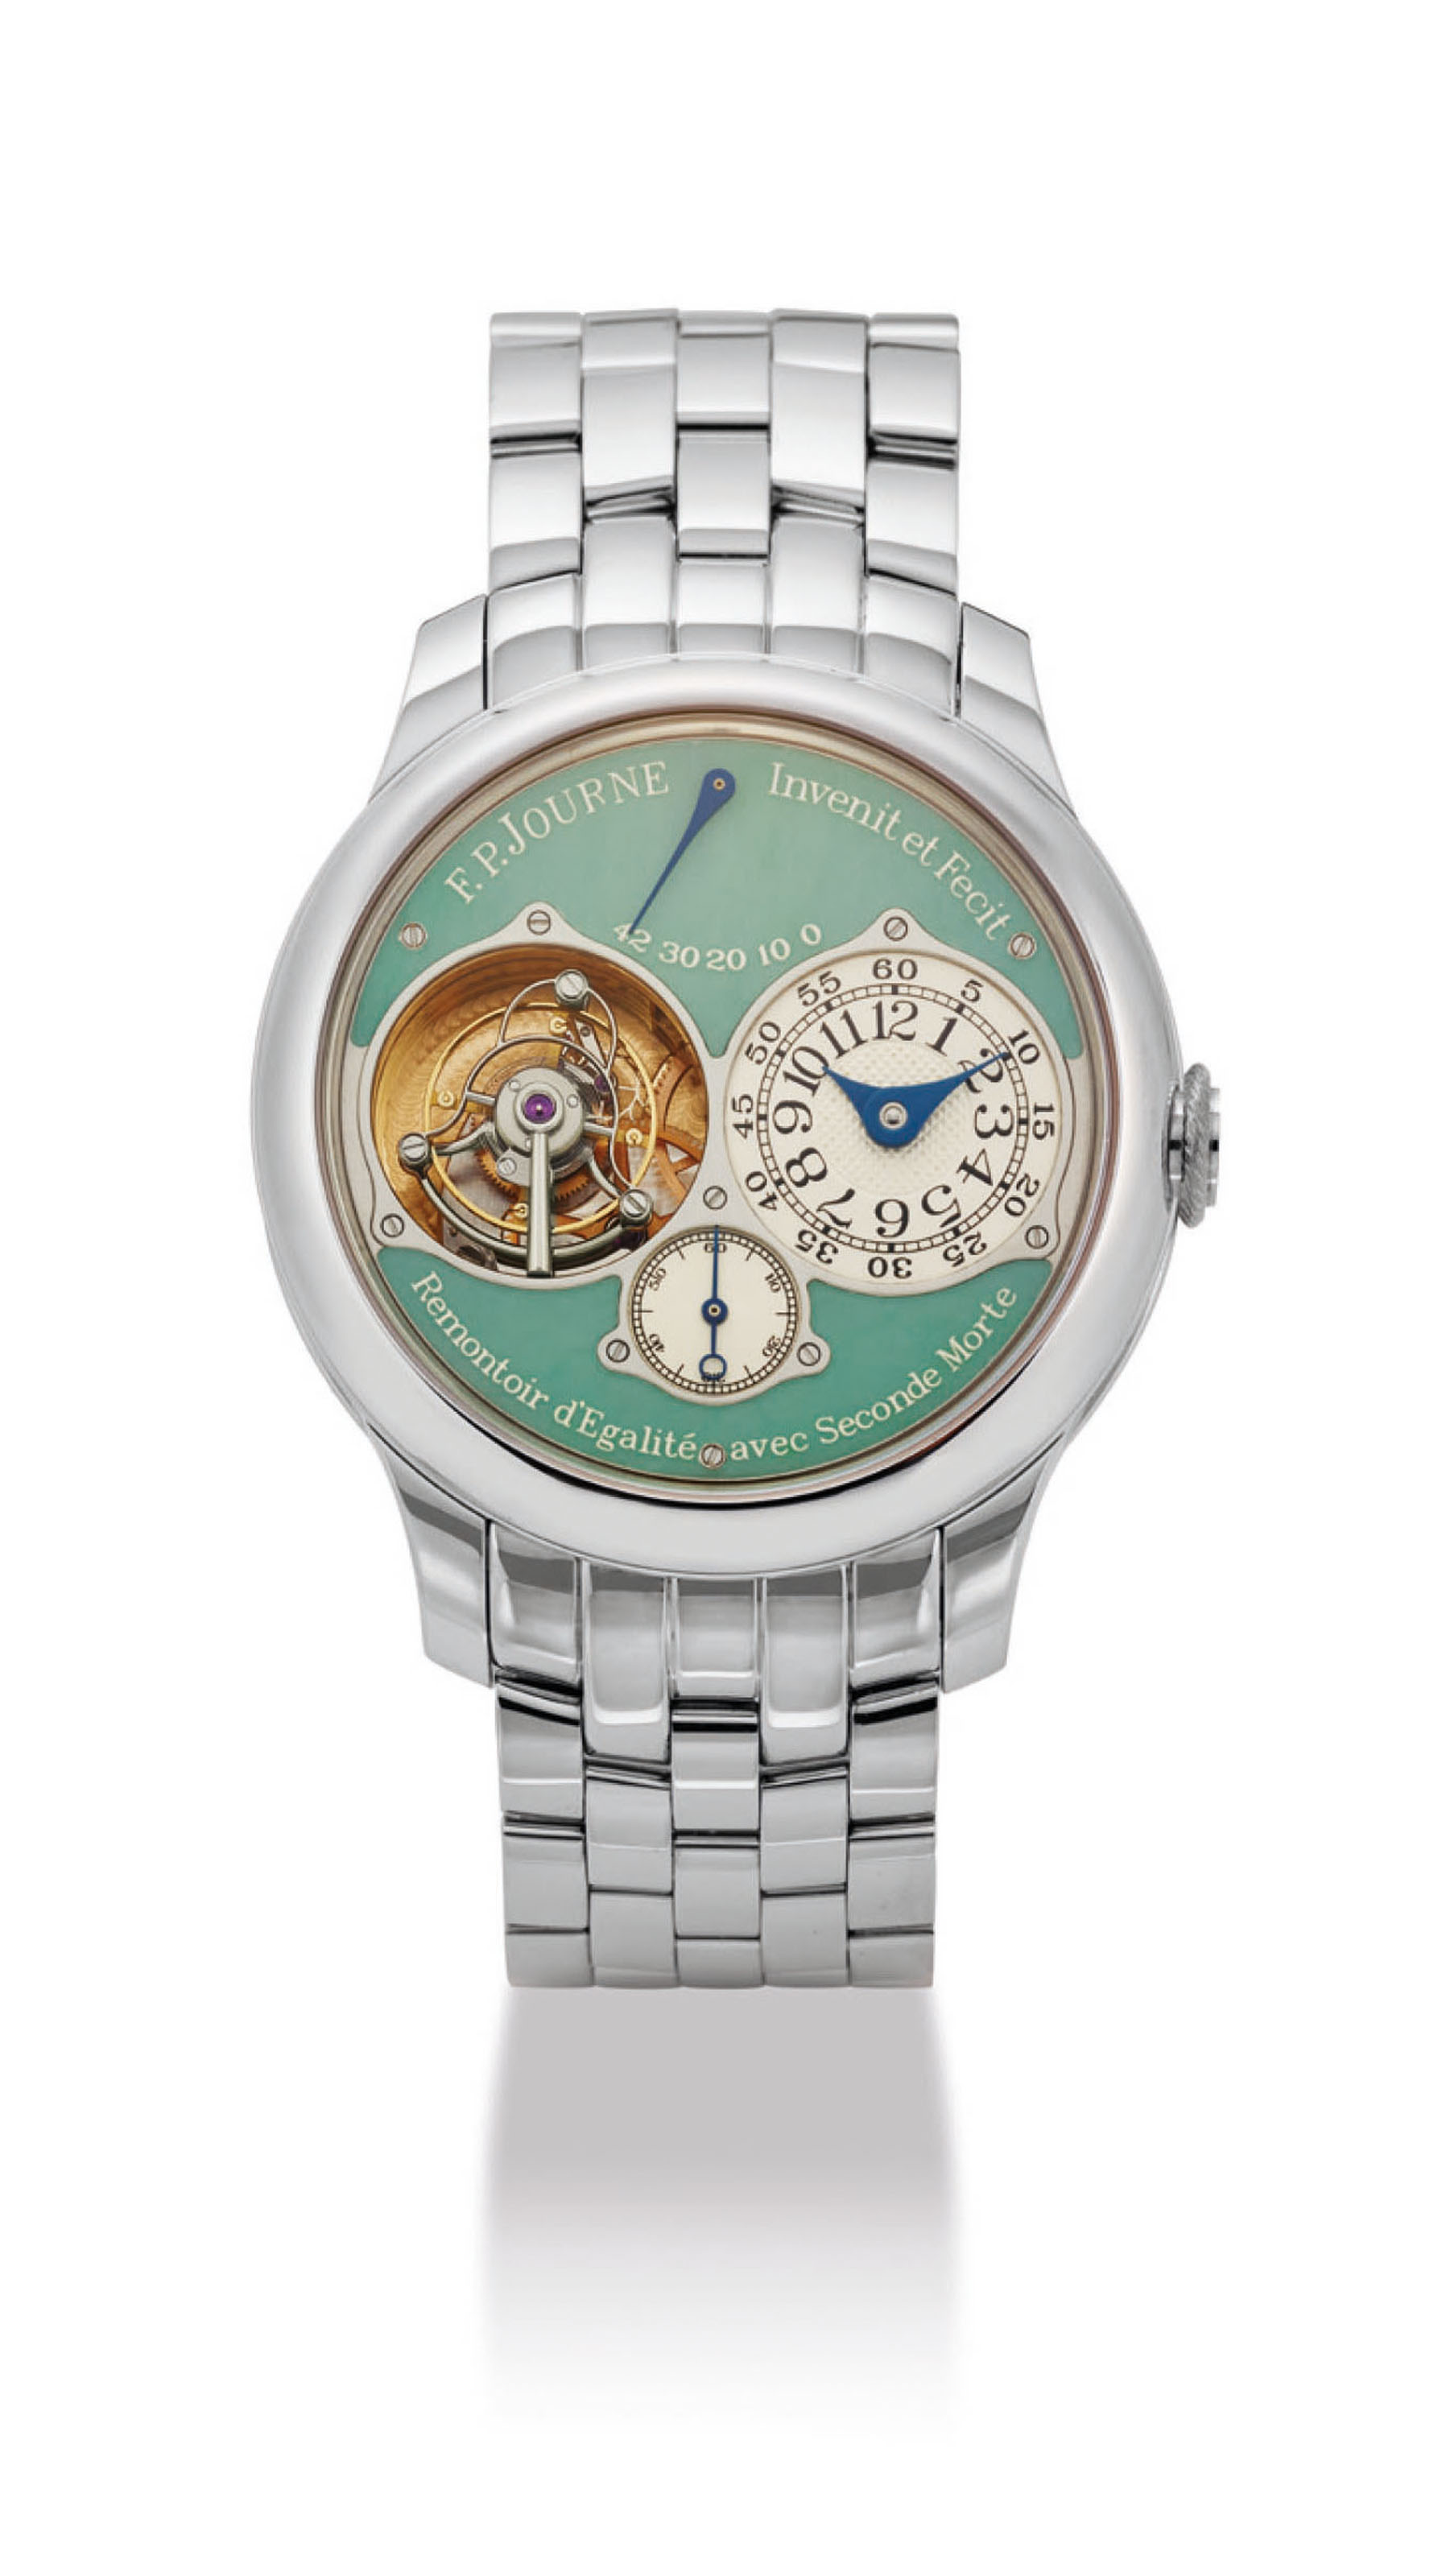 F.P. Journe, Tourbillon with jade dial, 2015. Sold for HK$1,187,500 on 28 November 2016 at Christie's in Hong Kong